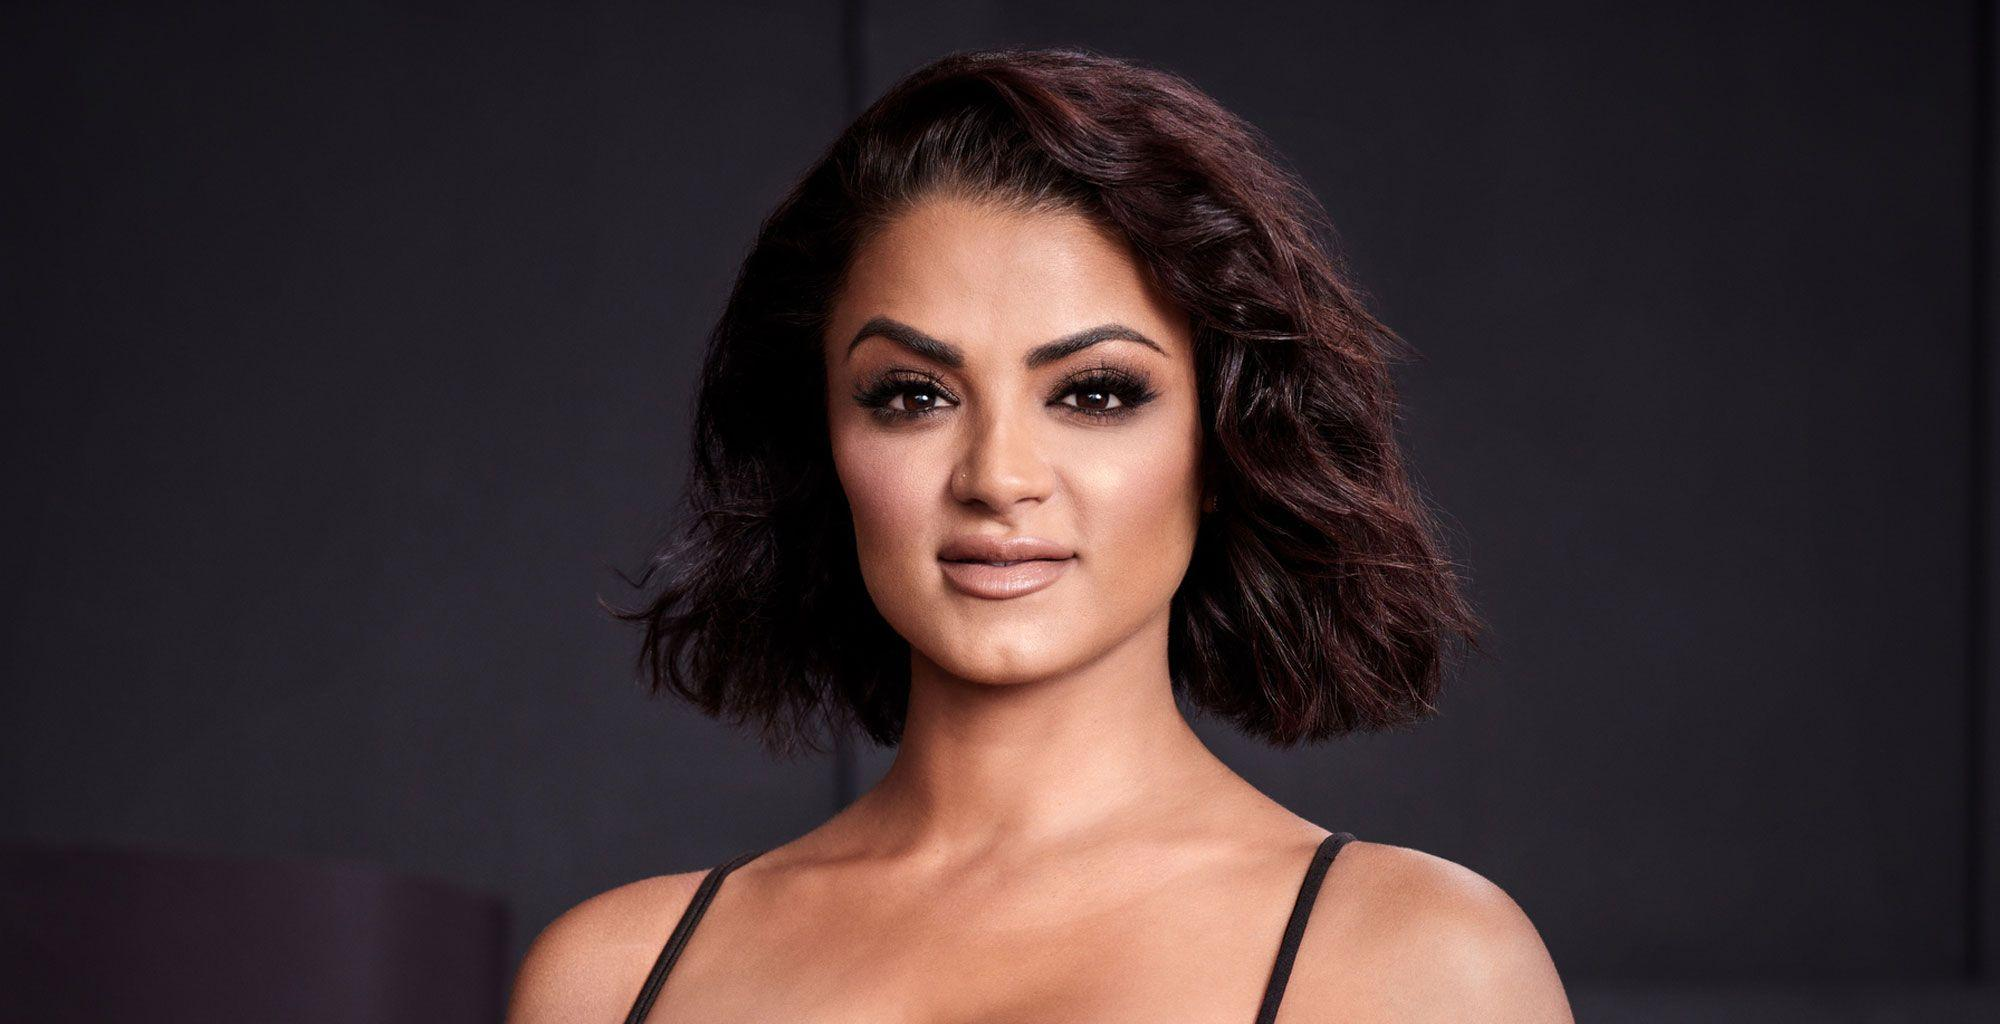 Shahs Of Sunset: Golnesa GG Gharachedaghi Gets Candid About Raising Her Newborn Alone: 'It's Scary'